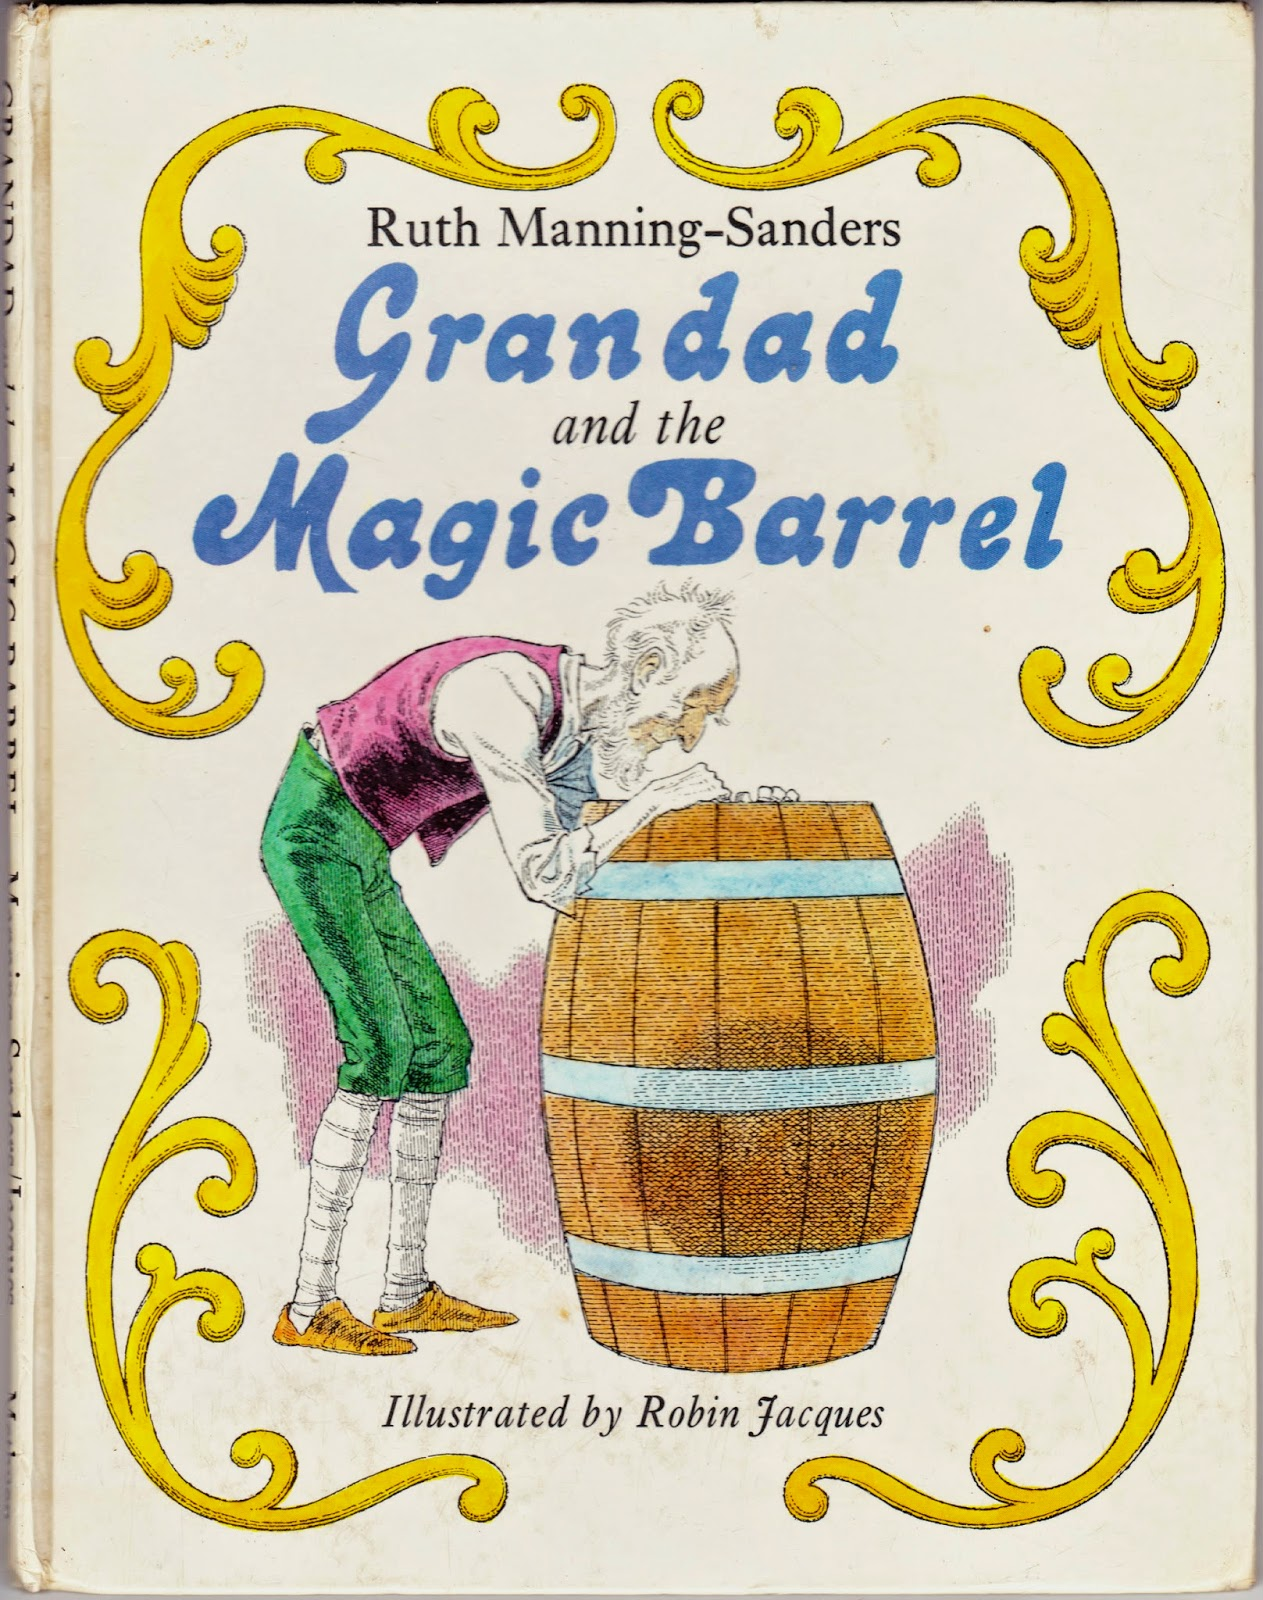 the magic barrel essay Brothersjuddcom reviews bernard malamud's the natural - grade: a -essay : bernard malamud's magic barrel : analysis of bernard the magic barrel make me crazy when i read it the first timeand i think maybe i have not read it carefully but actually it is a masterpiece that is.